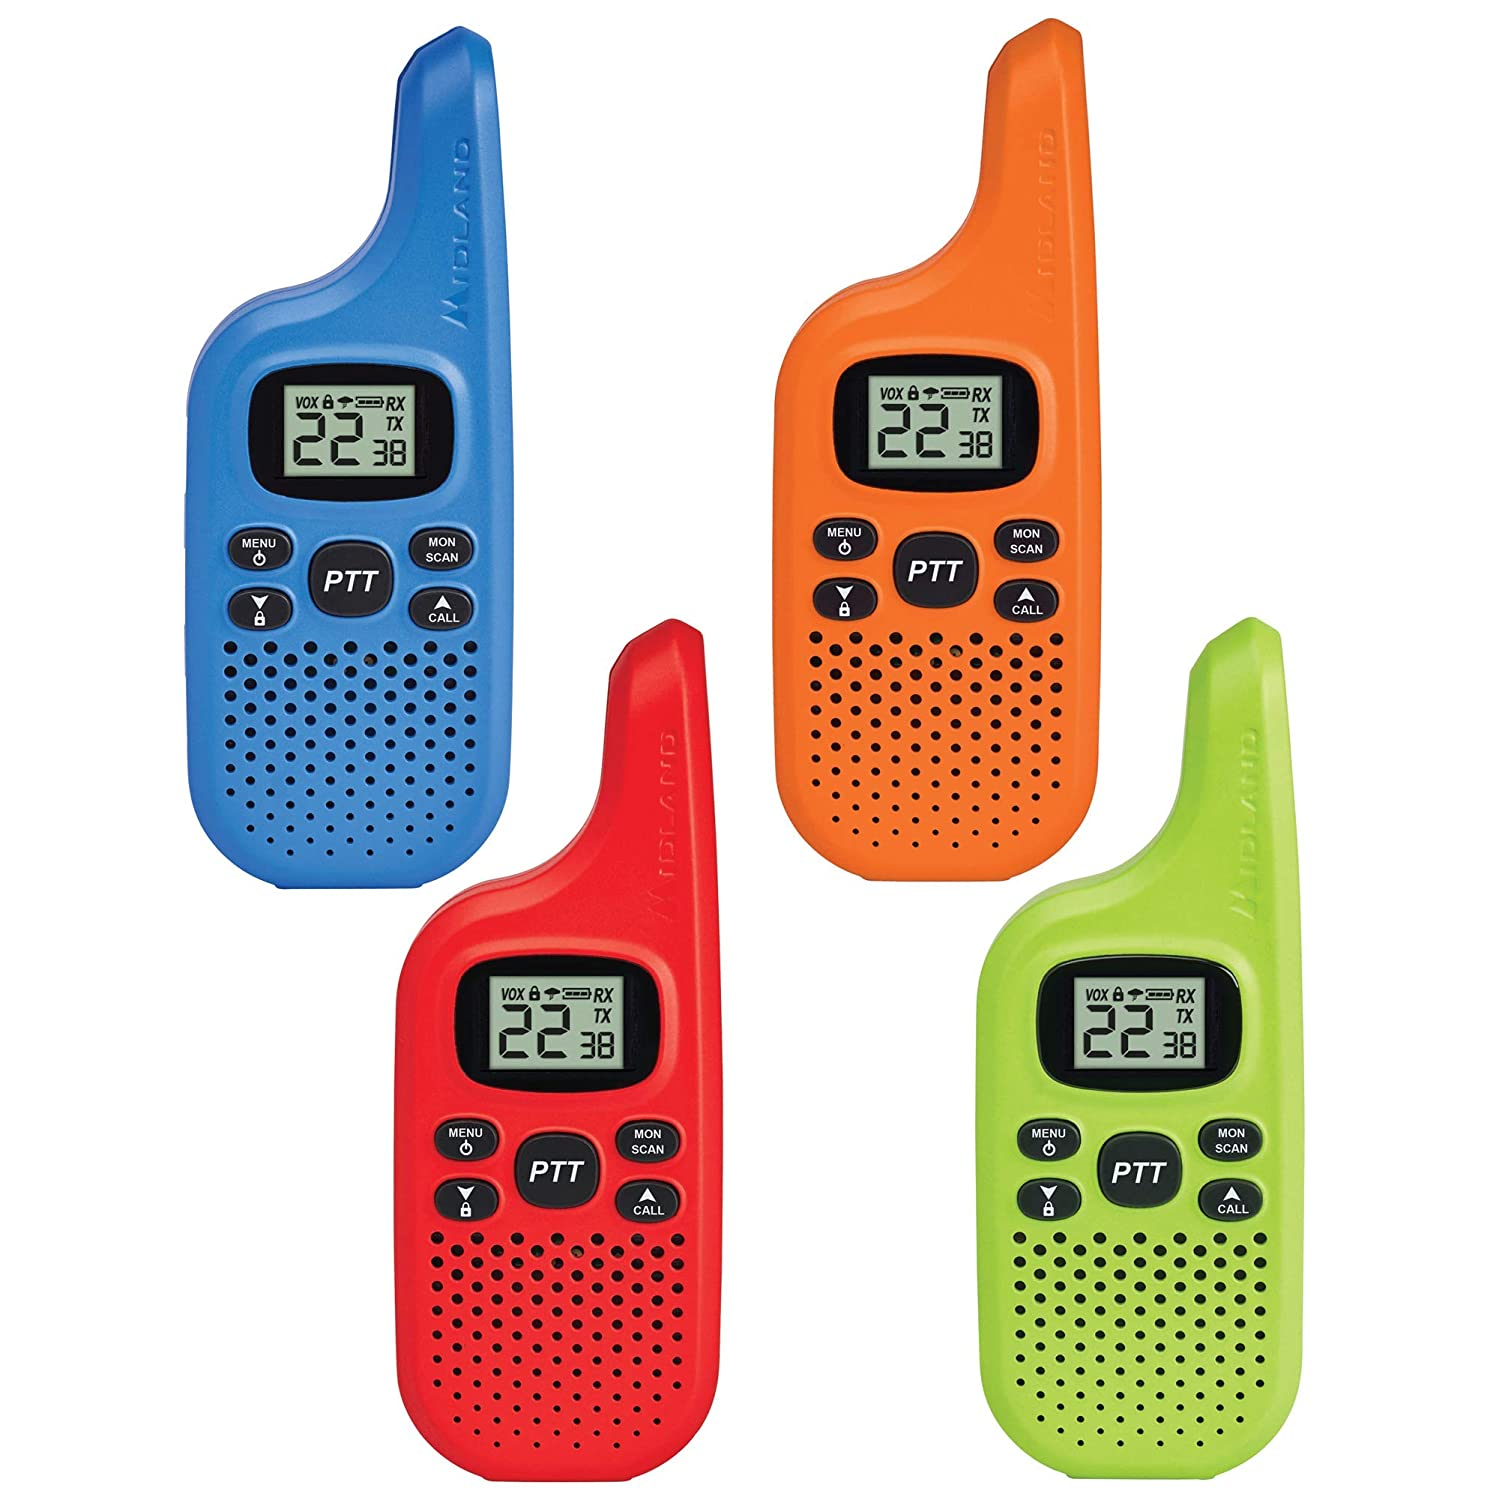 Midland – X-TALKER T20X4, Bright Colors Fun for Kids 22 Channel FRS Walkie Talkie – Two-Way Radio, 38 Privacy Codes, NOAA Weather Alert 4 Pack Multi-Color